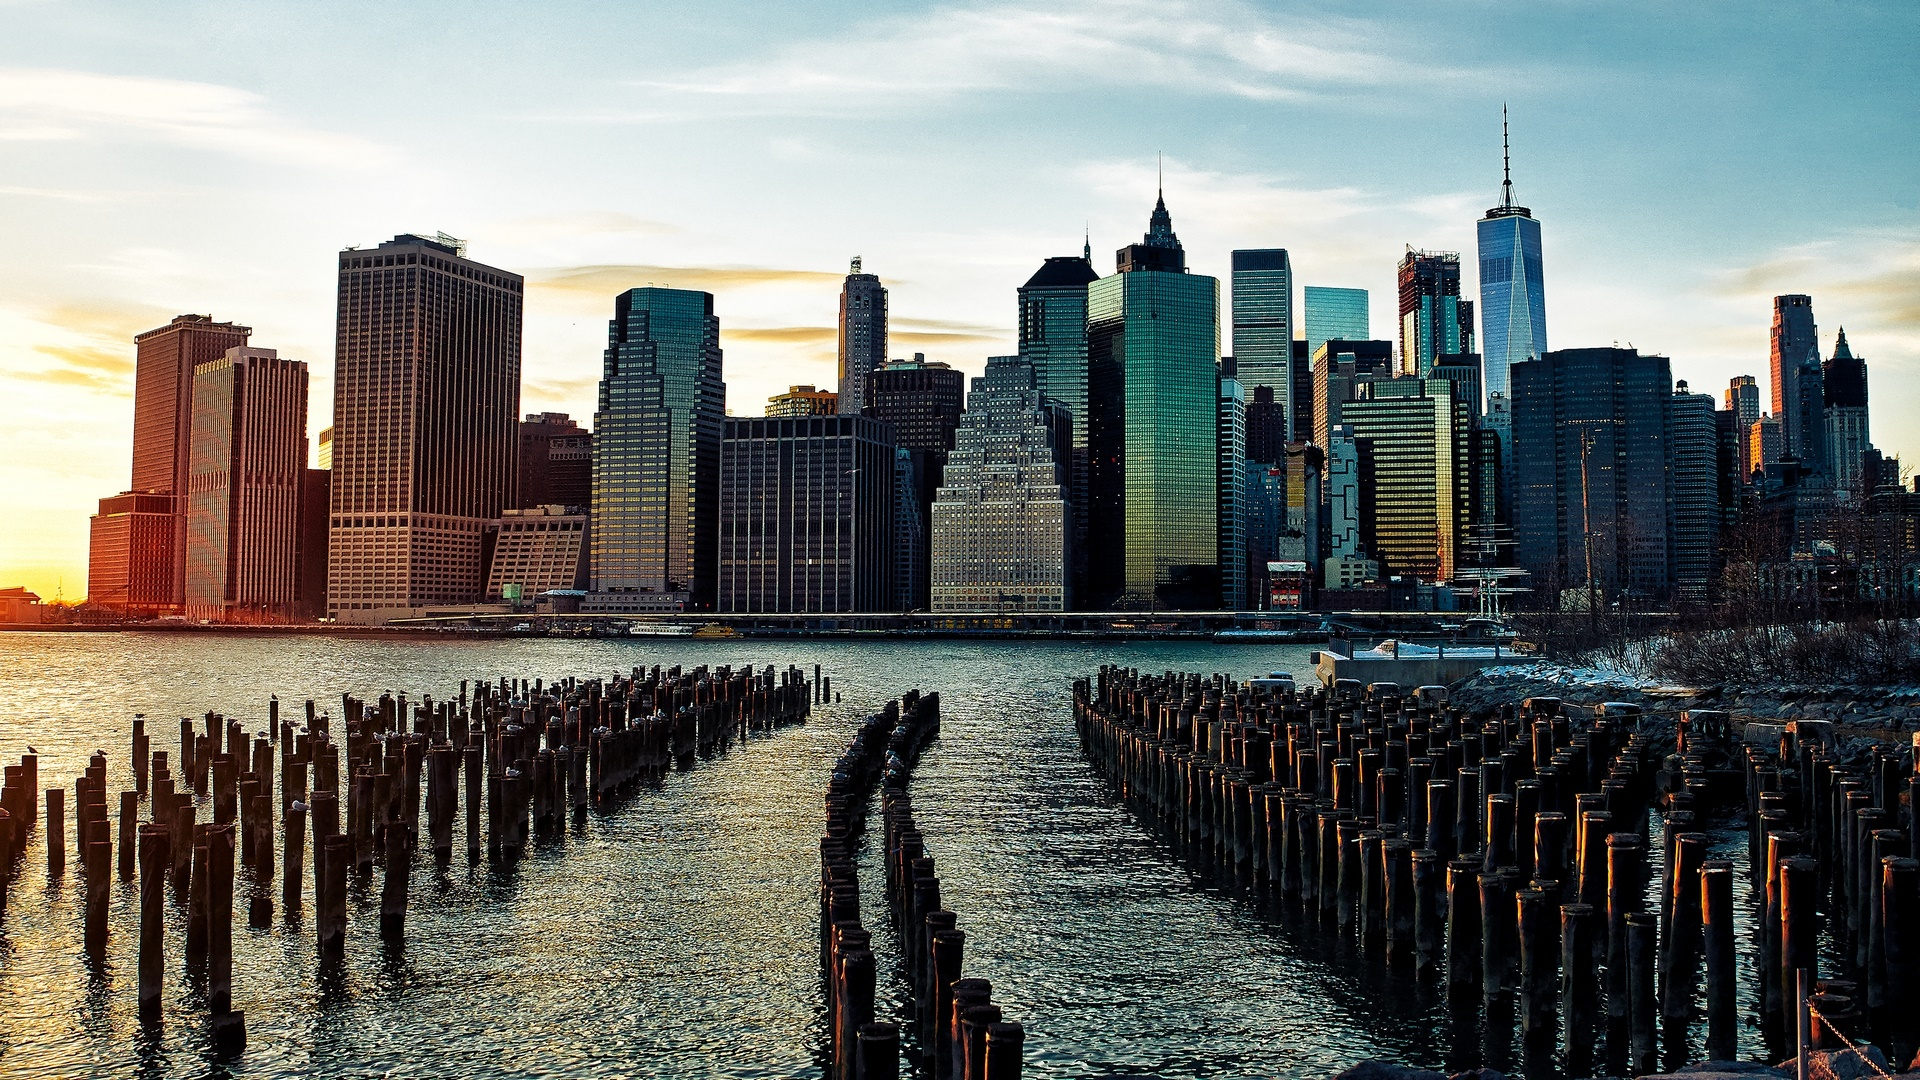 Stumps of the Brooklyn Bridge Park wallpaper